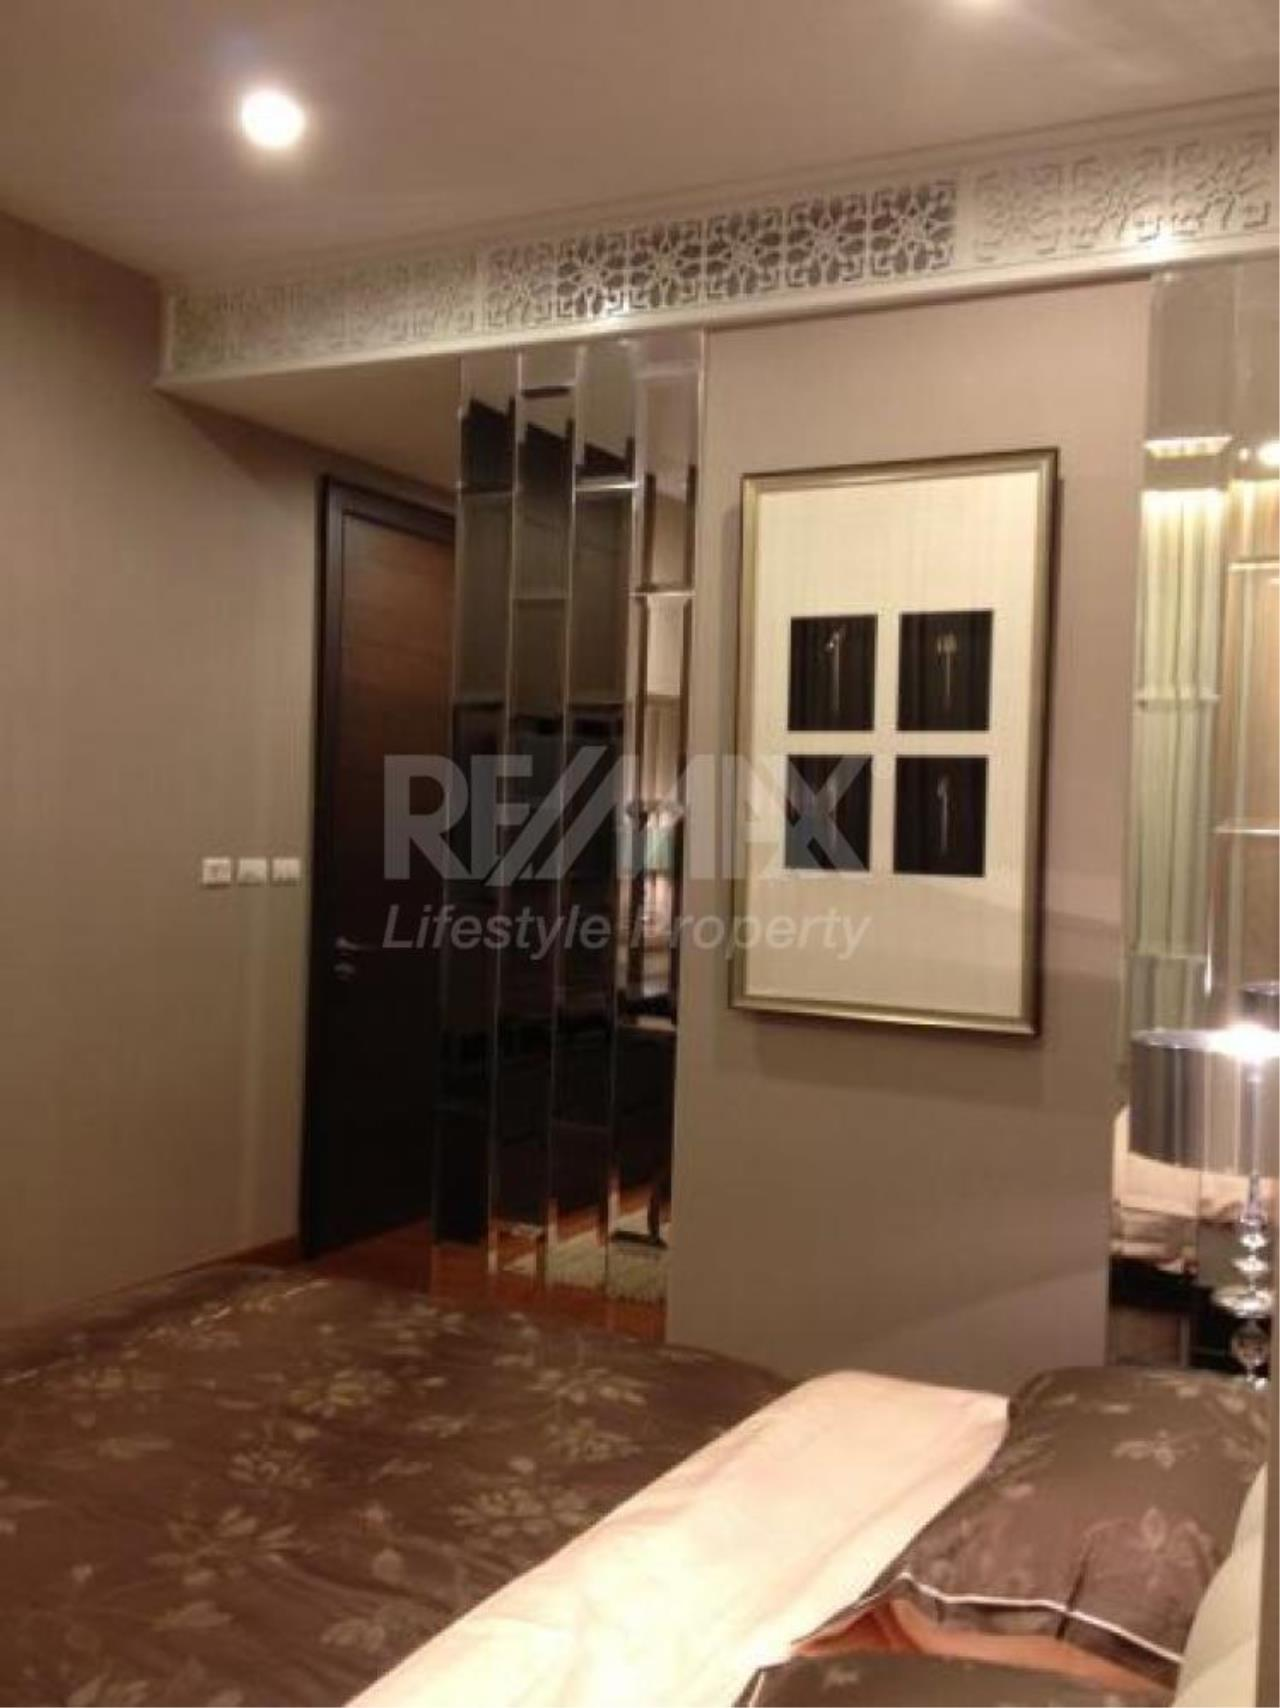 RE/MAX LifeStyle Property Agency's Oriental Residence 1